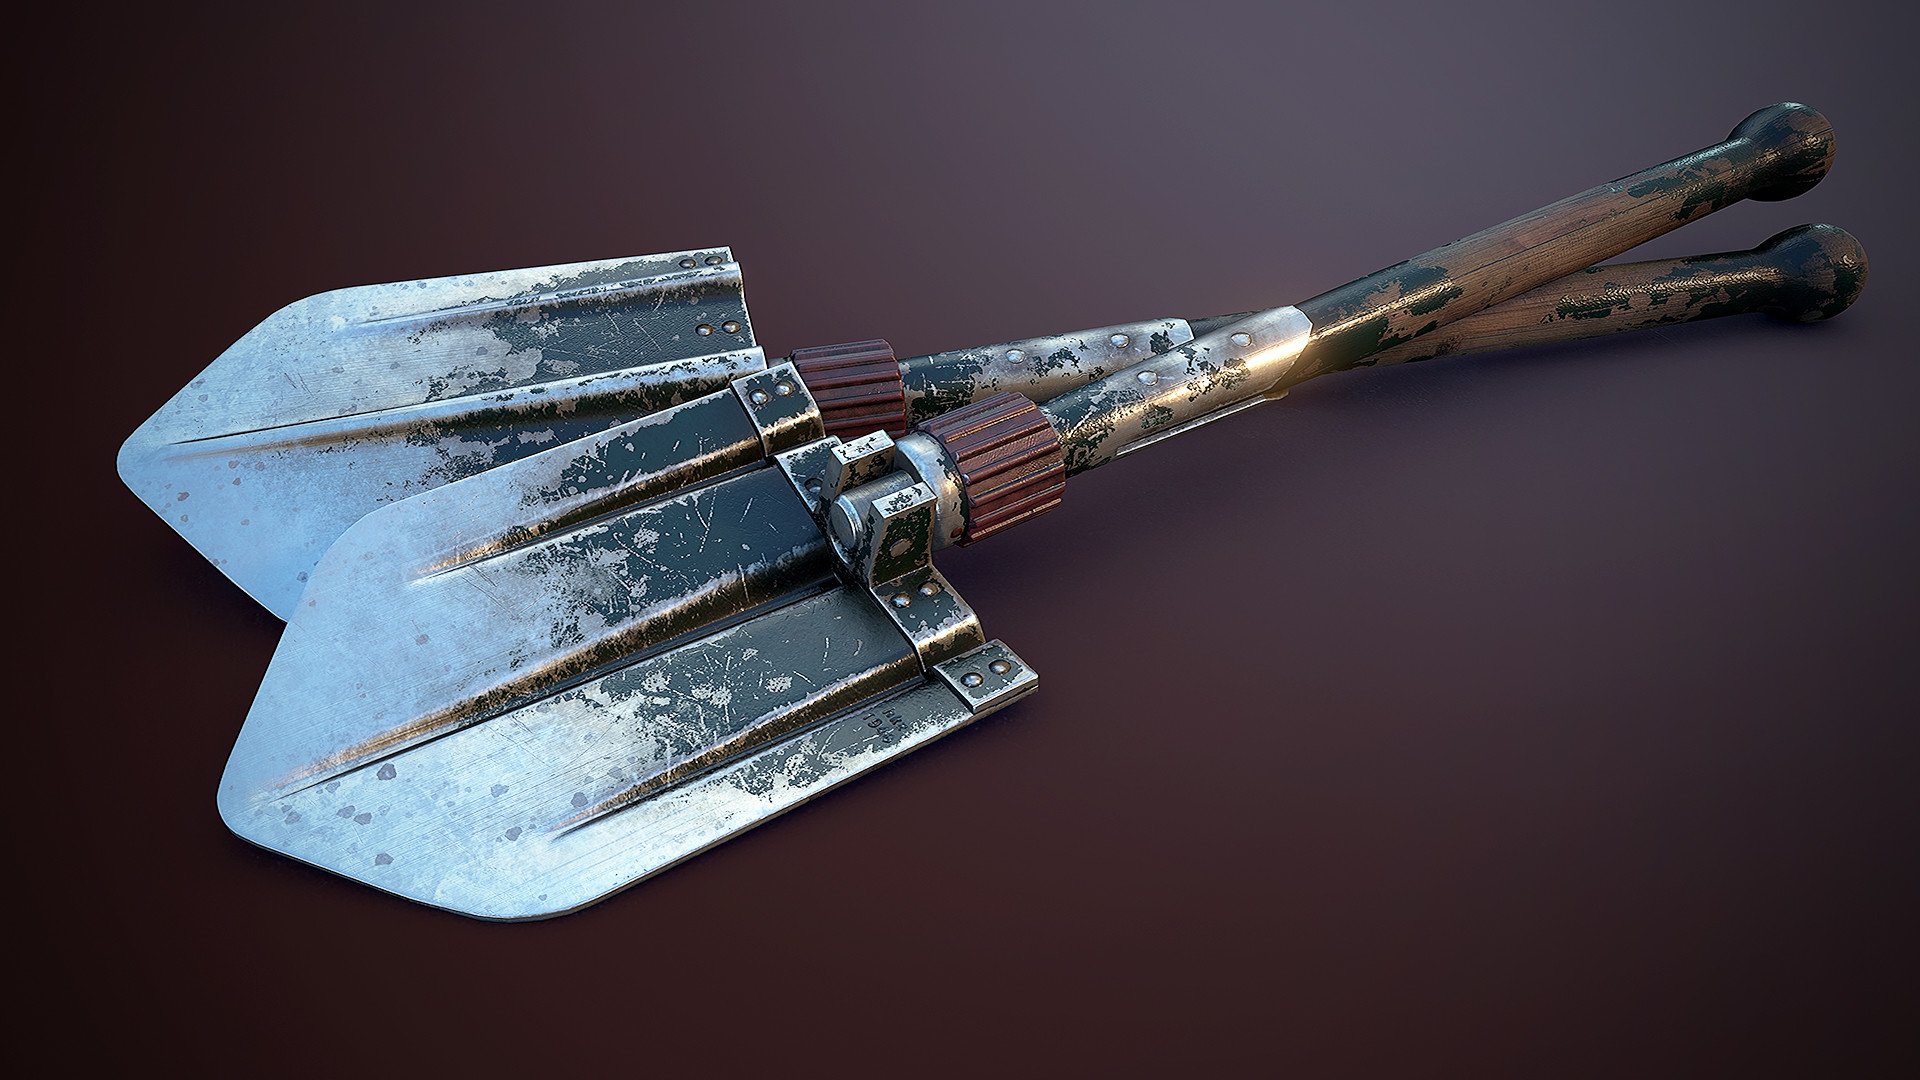 ArtStation - PBR - German WW2 Entrenching Tool (Trench